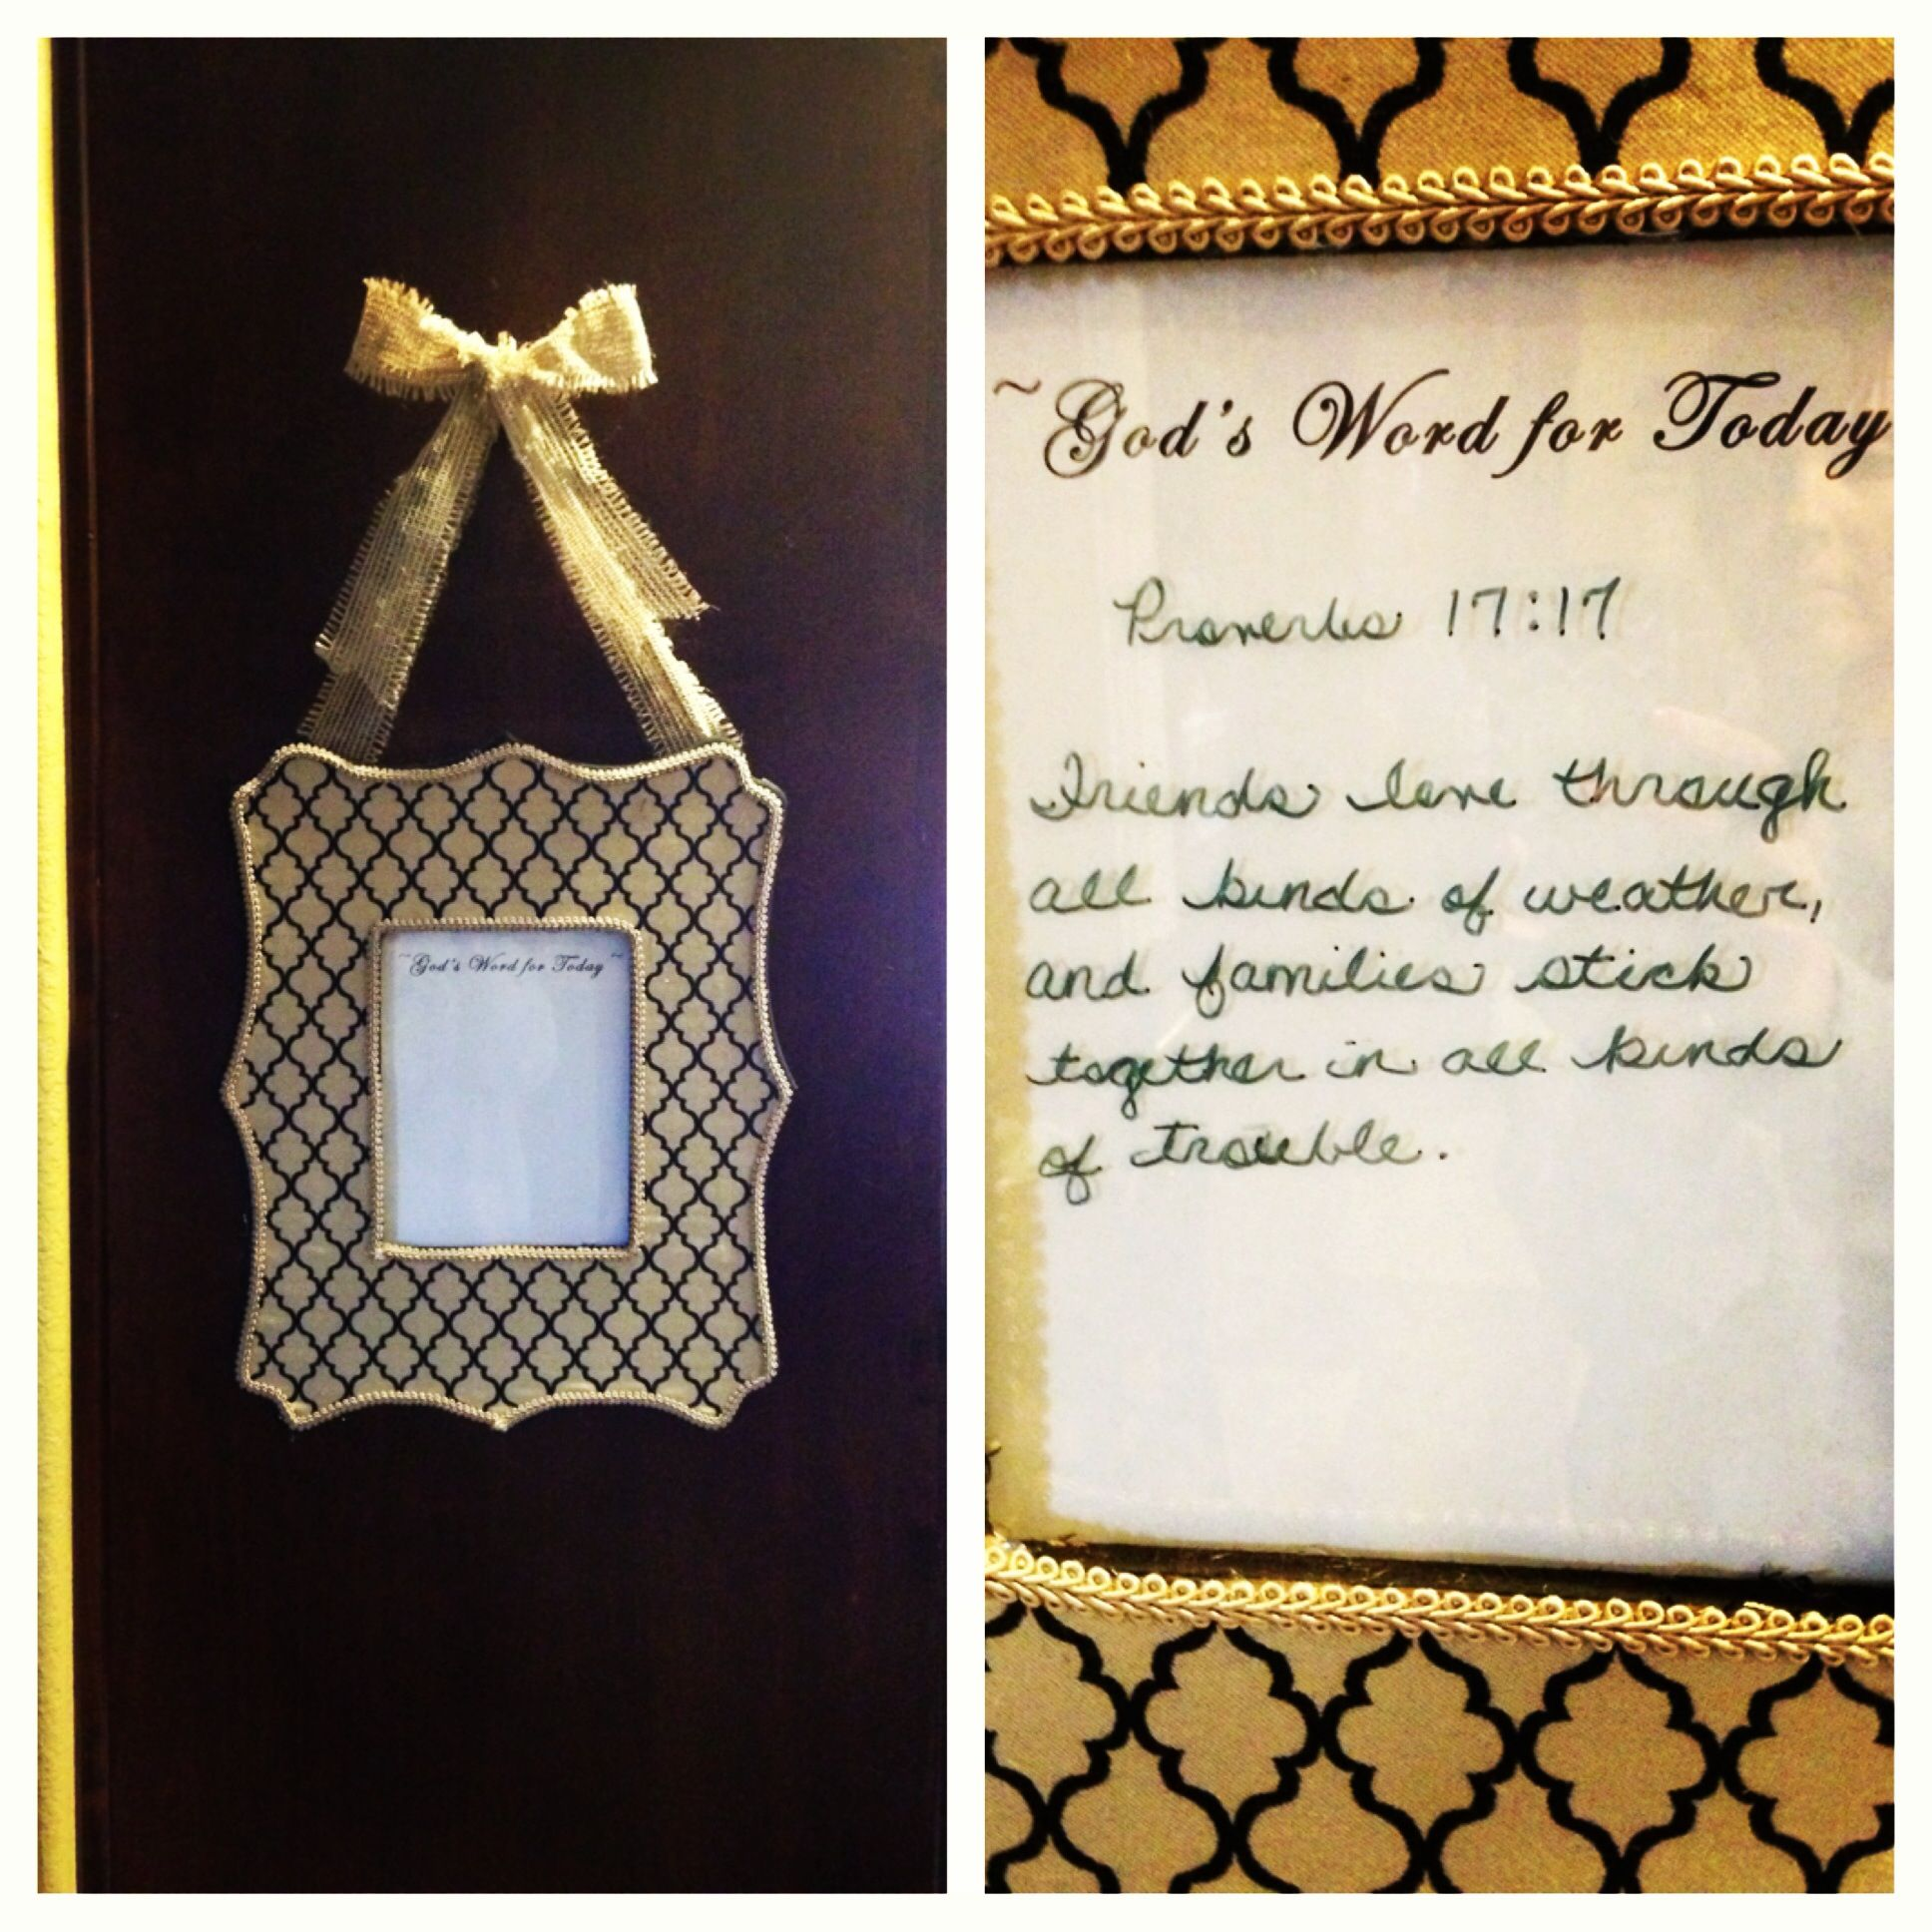 Craft pens to write on wood - Fabric Covered Wood Frame Use Dry Erase Pen To Write Bible Verse On